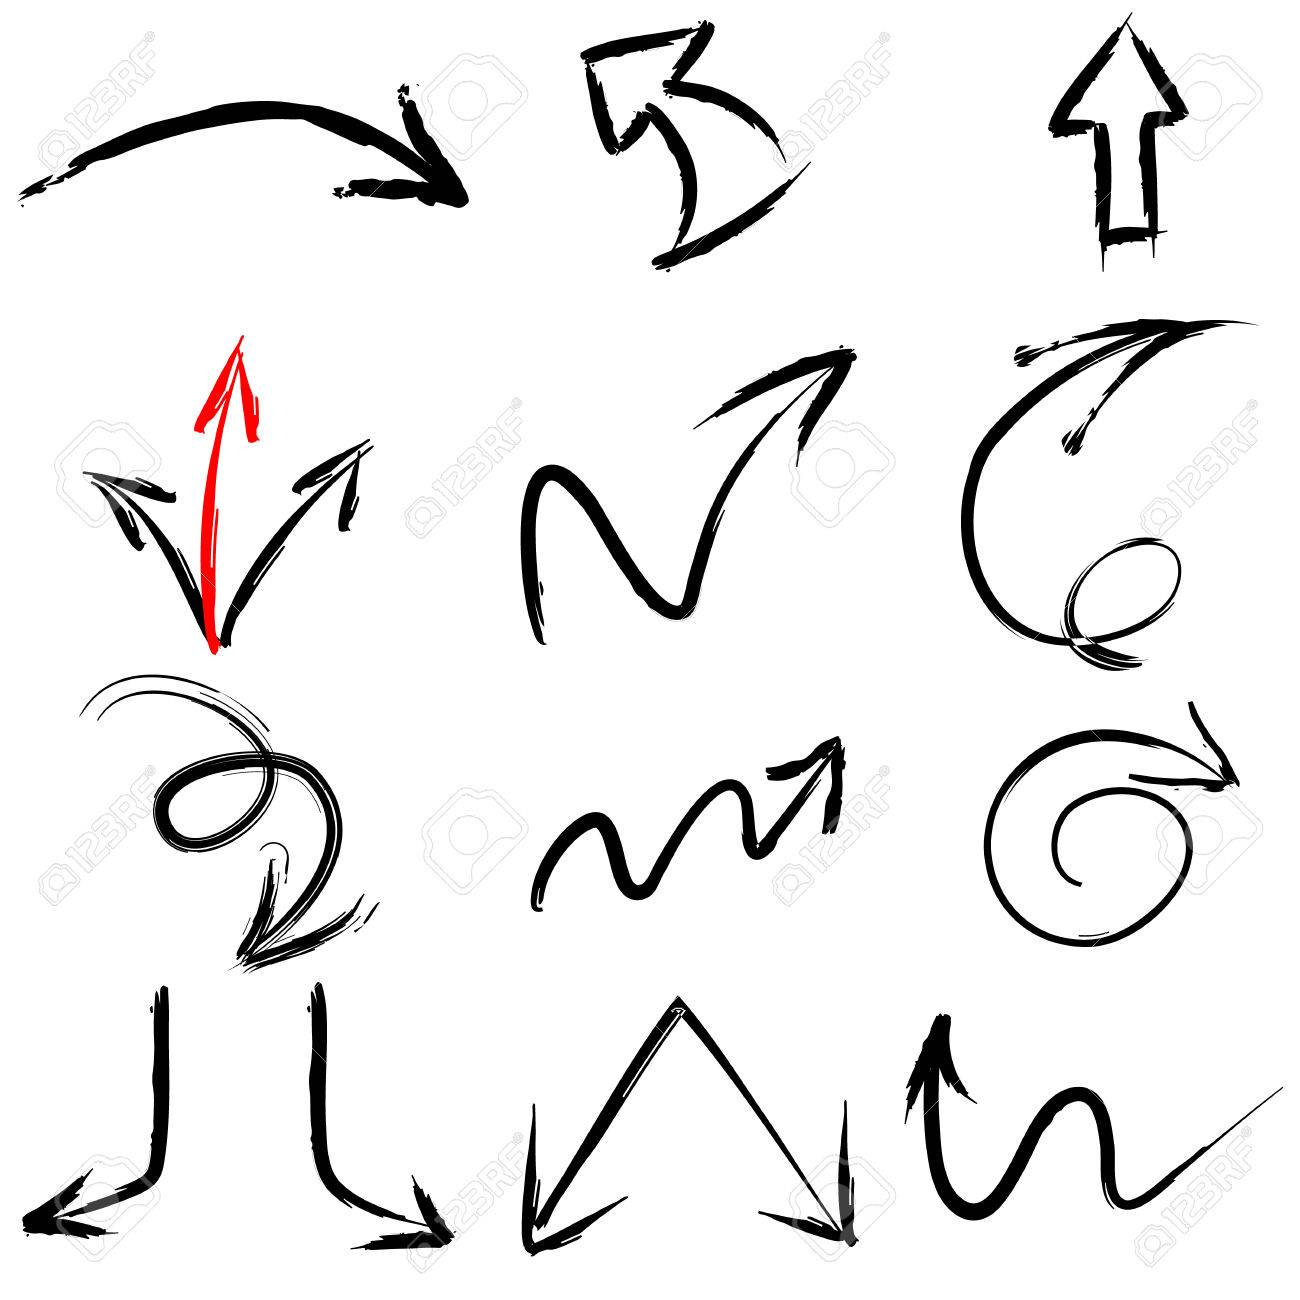 A collection of black grungy vector abstract hand-painted brush and stroke arrows - 22858943